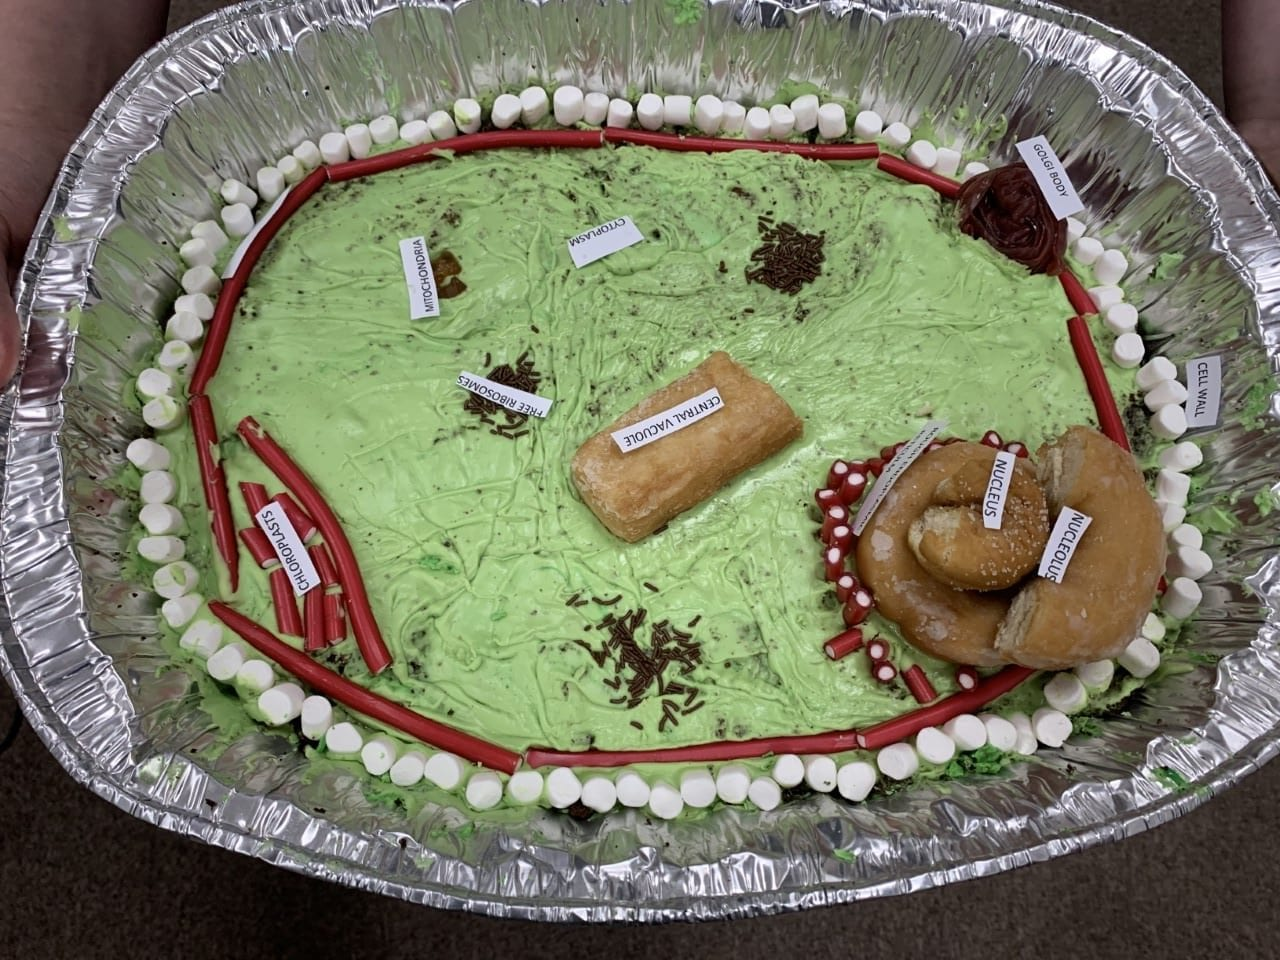 Cell Structures Represented in Cake